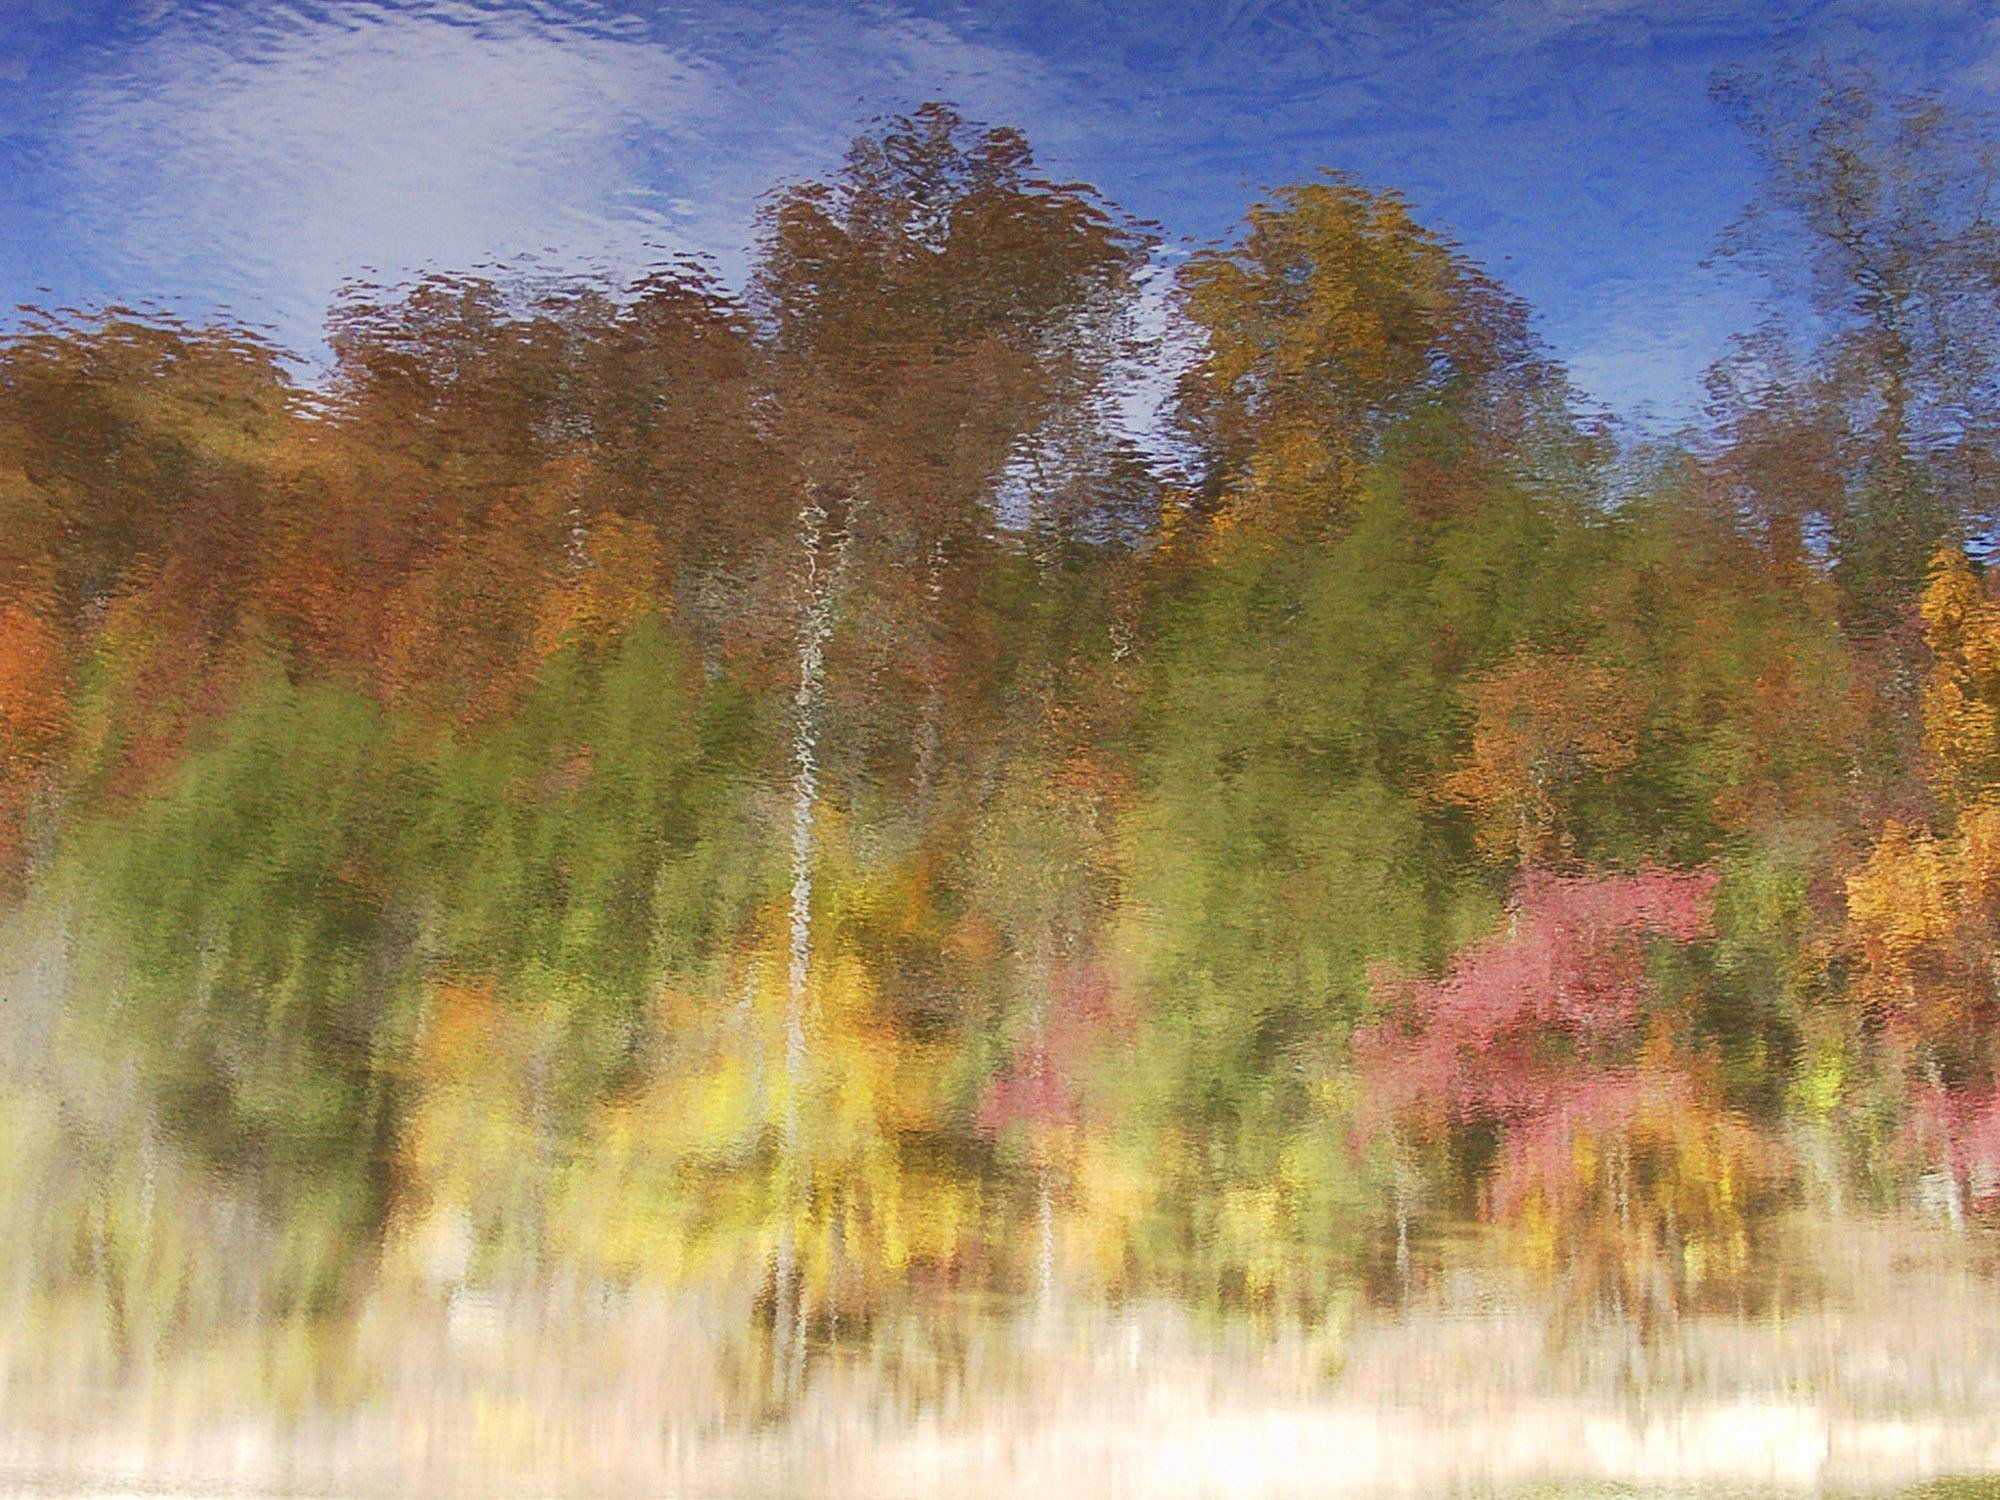 Woods are reflected in Sugar Creek at Turkey Run State Park, Indiana on October 28, 2002.